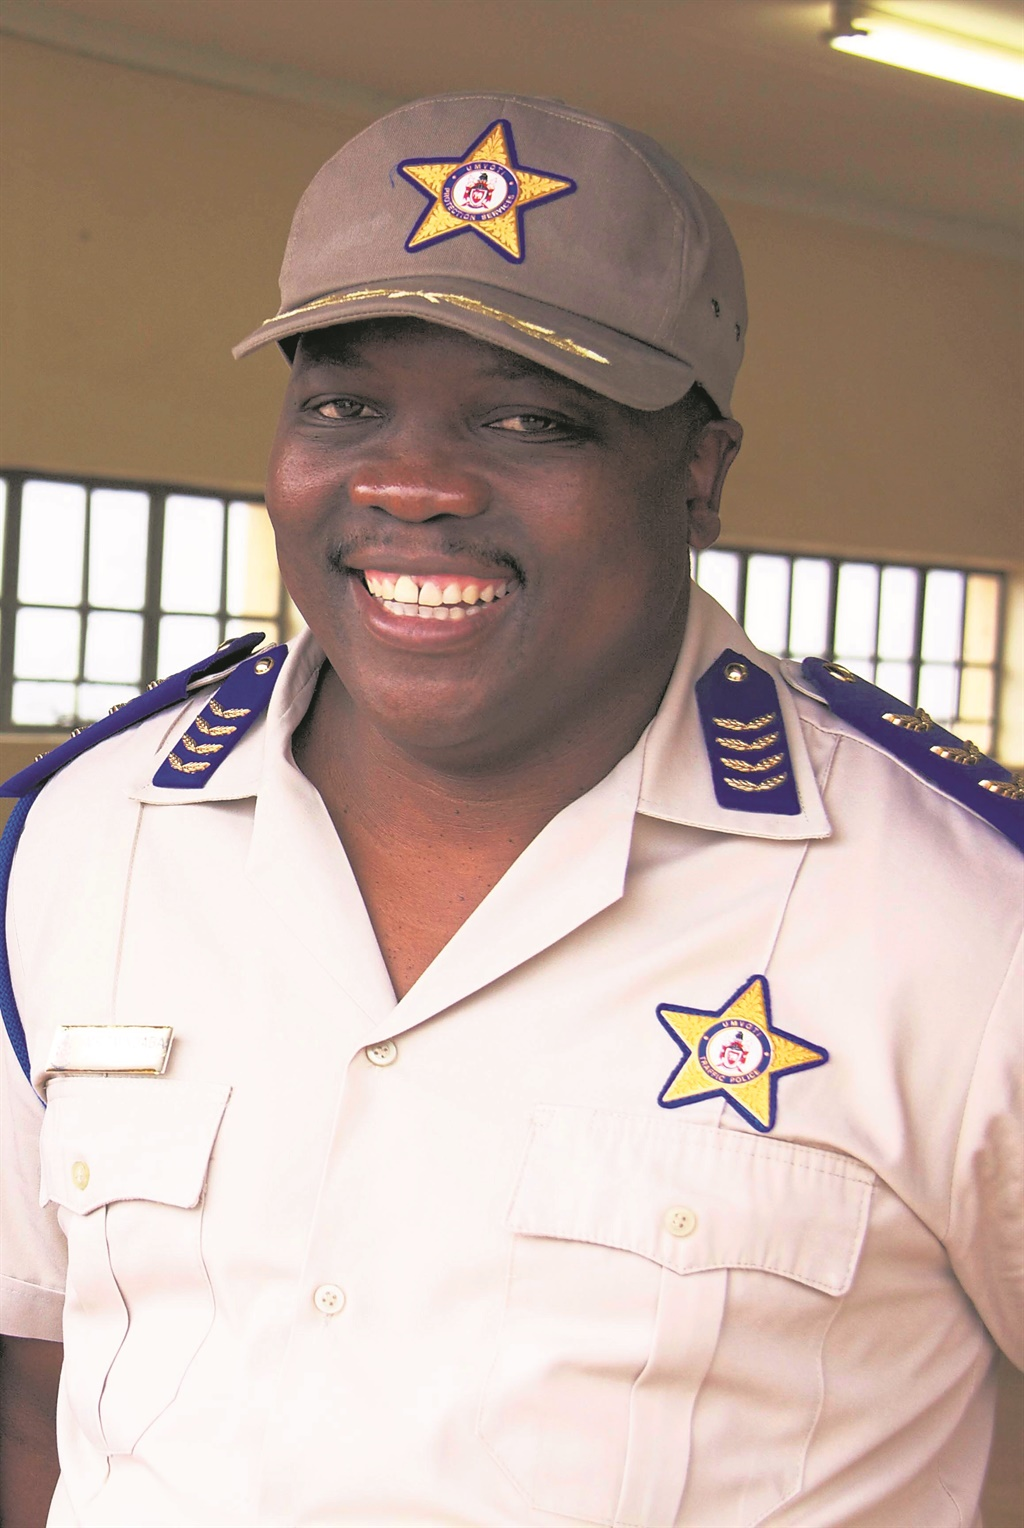 Umvoti's senior traffic officer Thobani 'TM' Ndaba was gunned down in his office on Thursday evening.